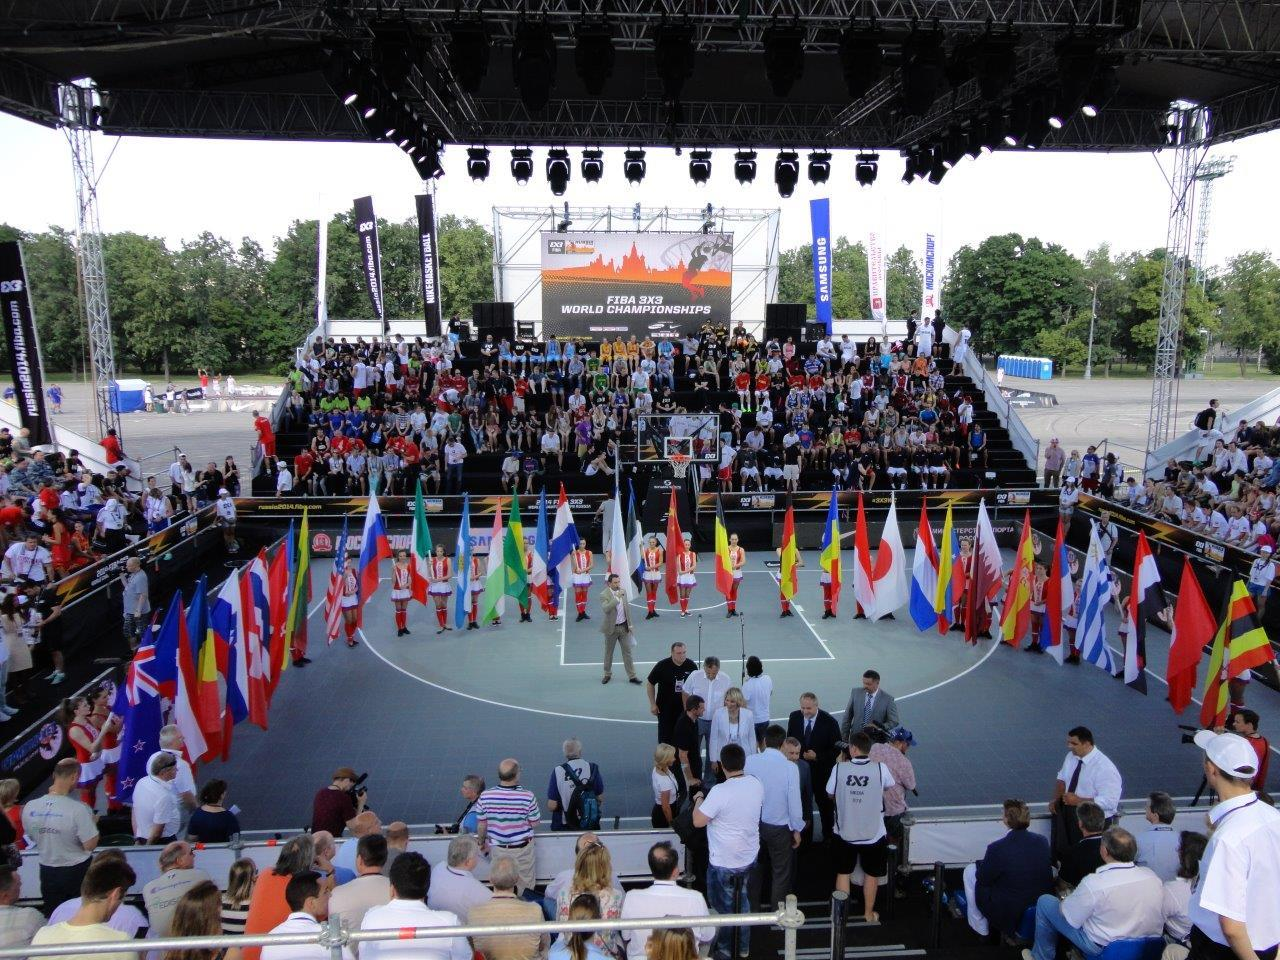 Gold Medals awarded on the Sport Court basketball courts at the FIBA 3x3 World Championships